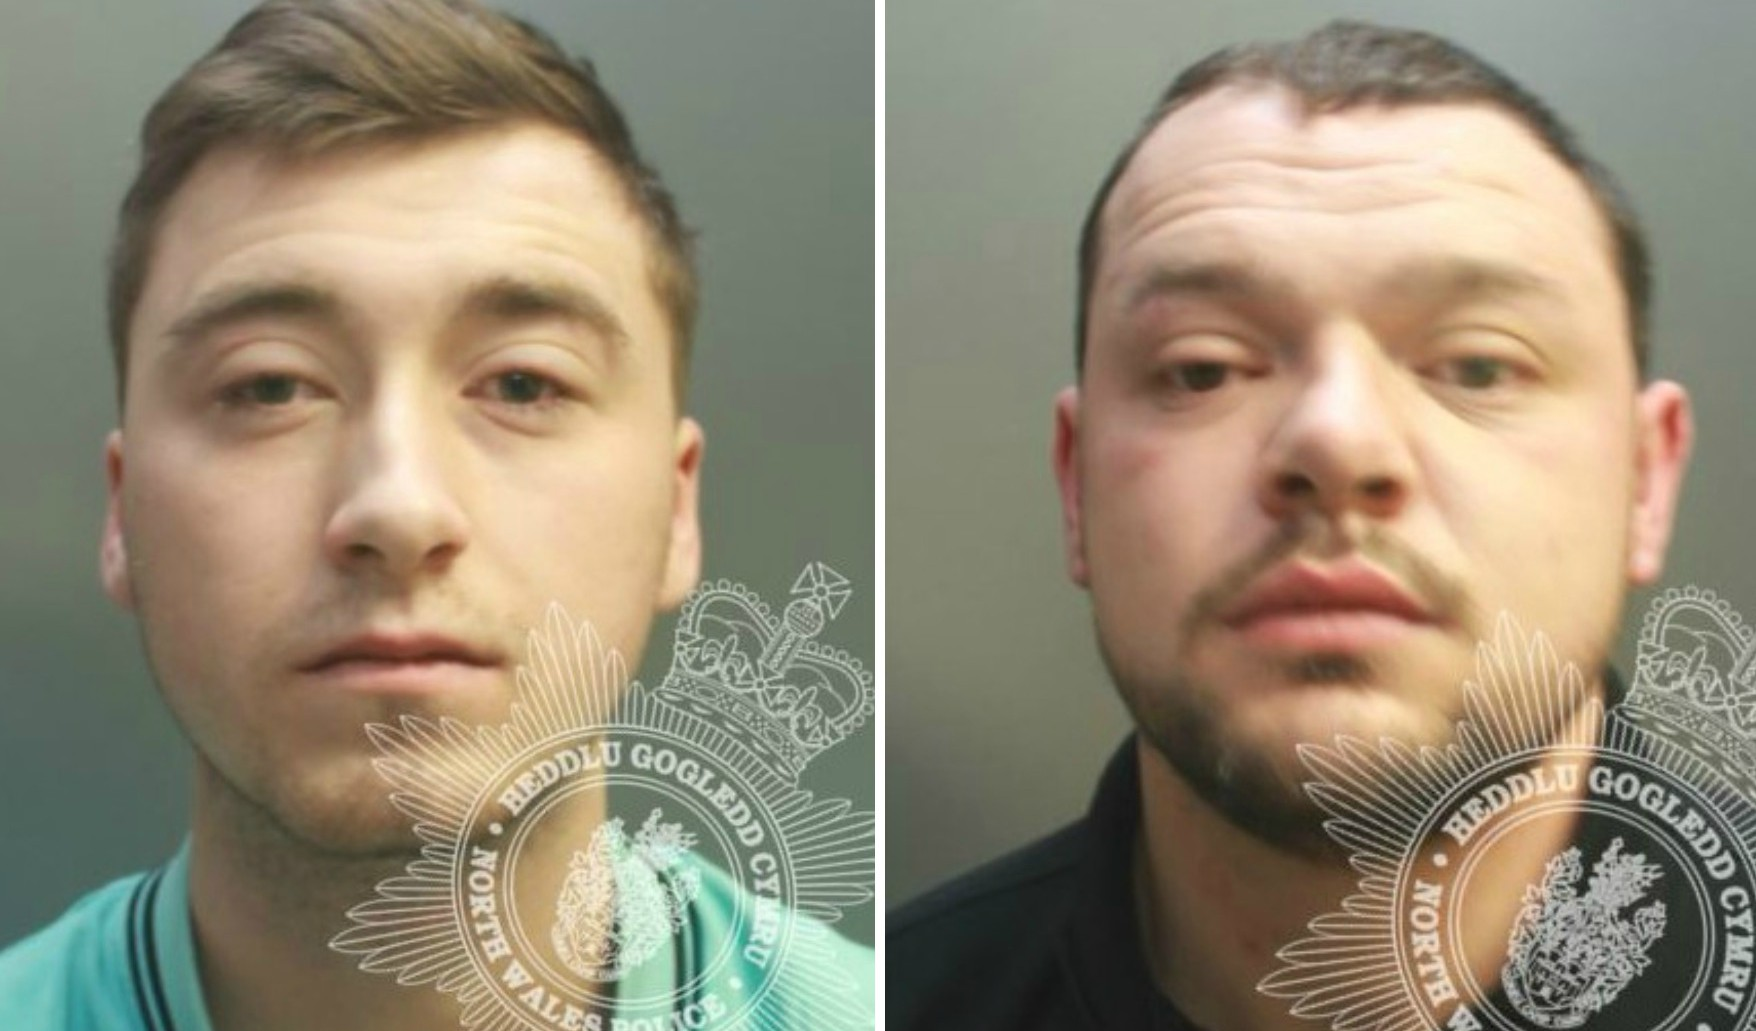 Jailed: Joshua Roberts and Darren Thomas. Images: North Wales Police